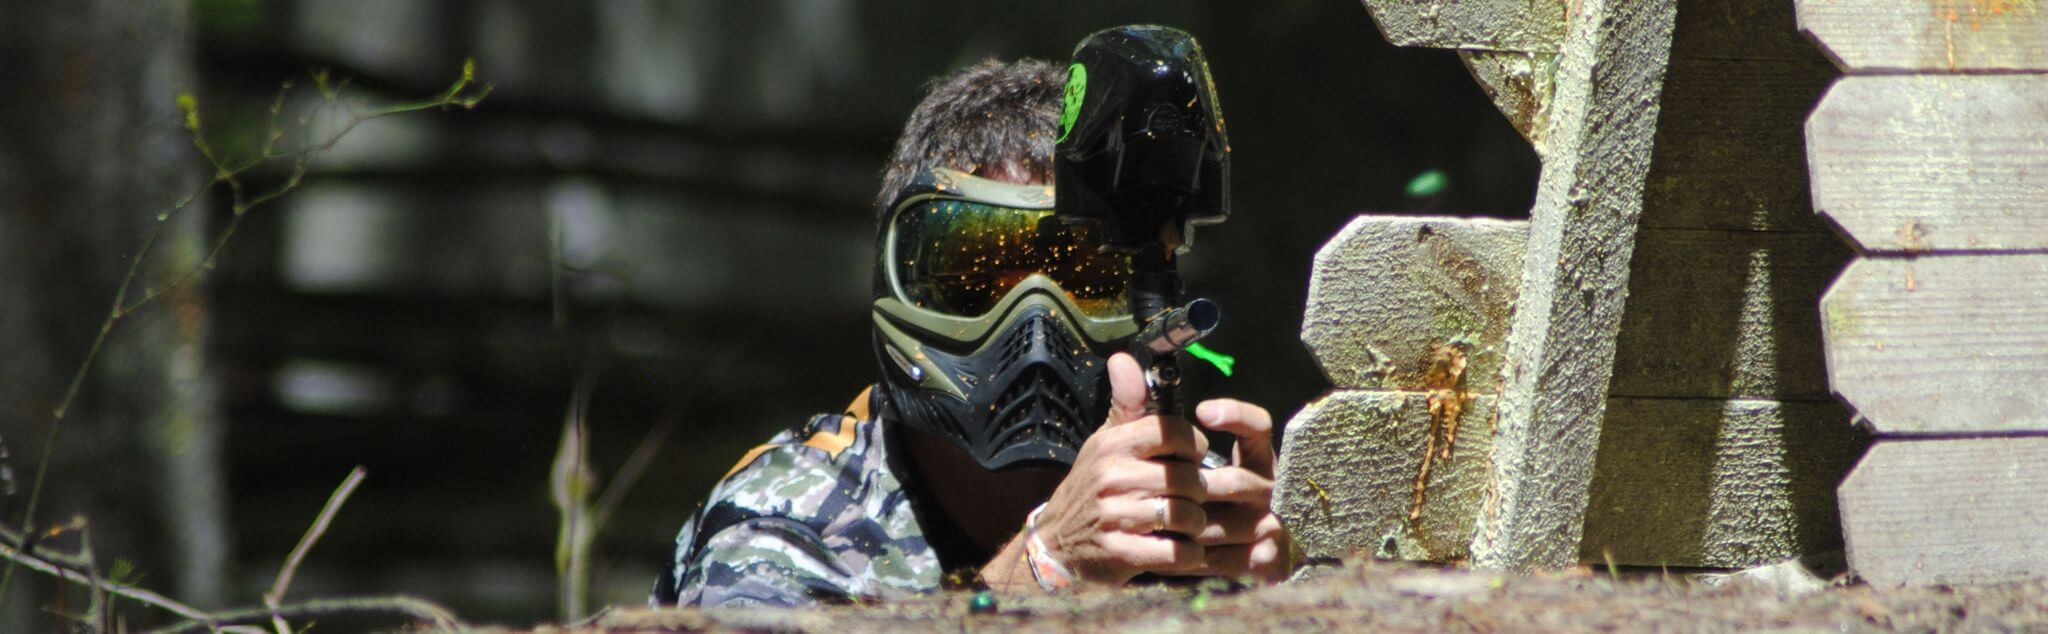 Paintball in West End